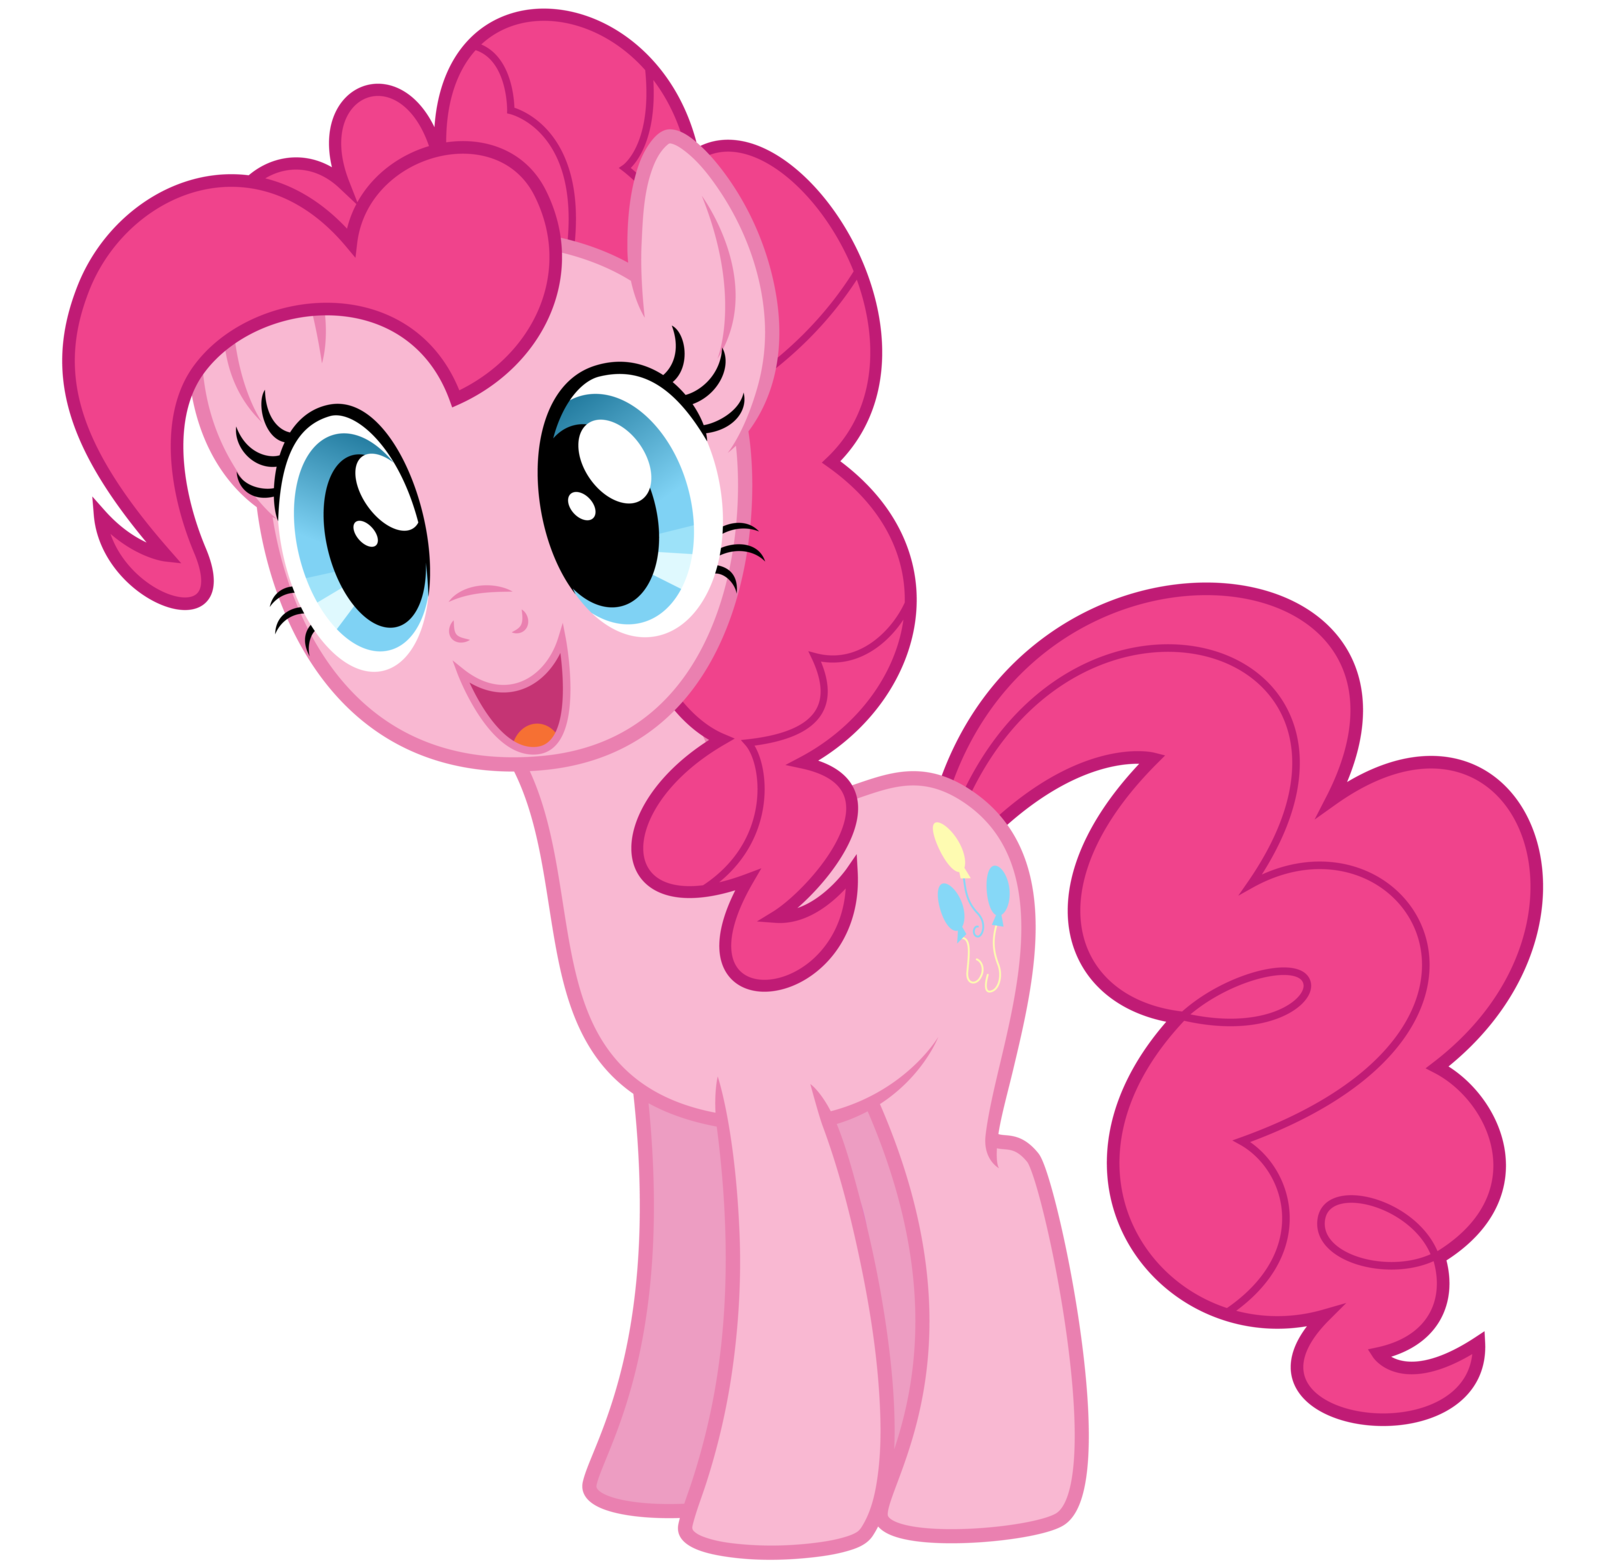 Pinkie pie clipart 3 » Clipart Station.